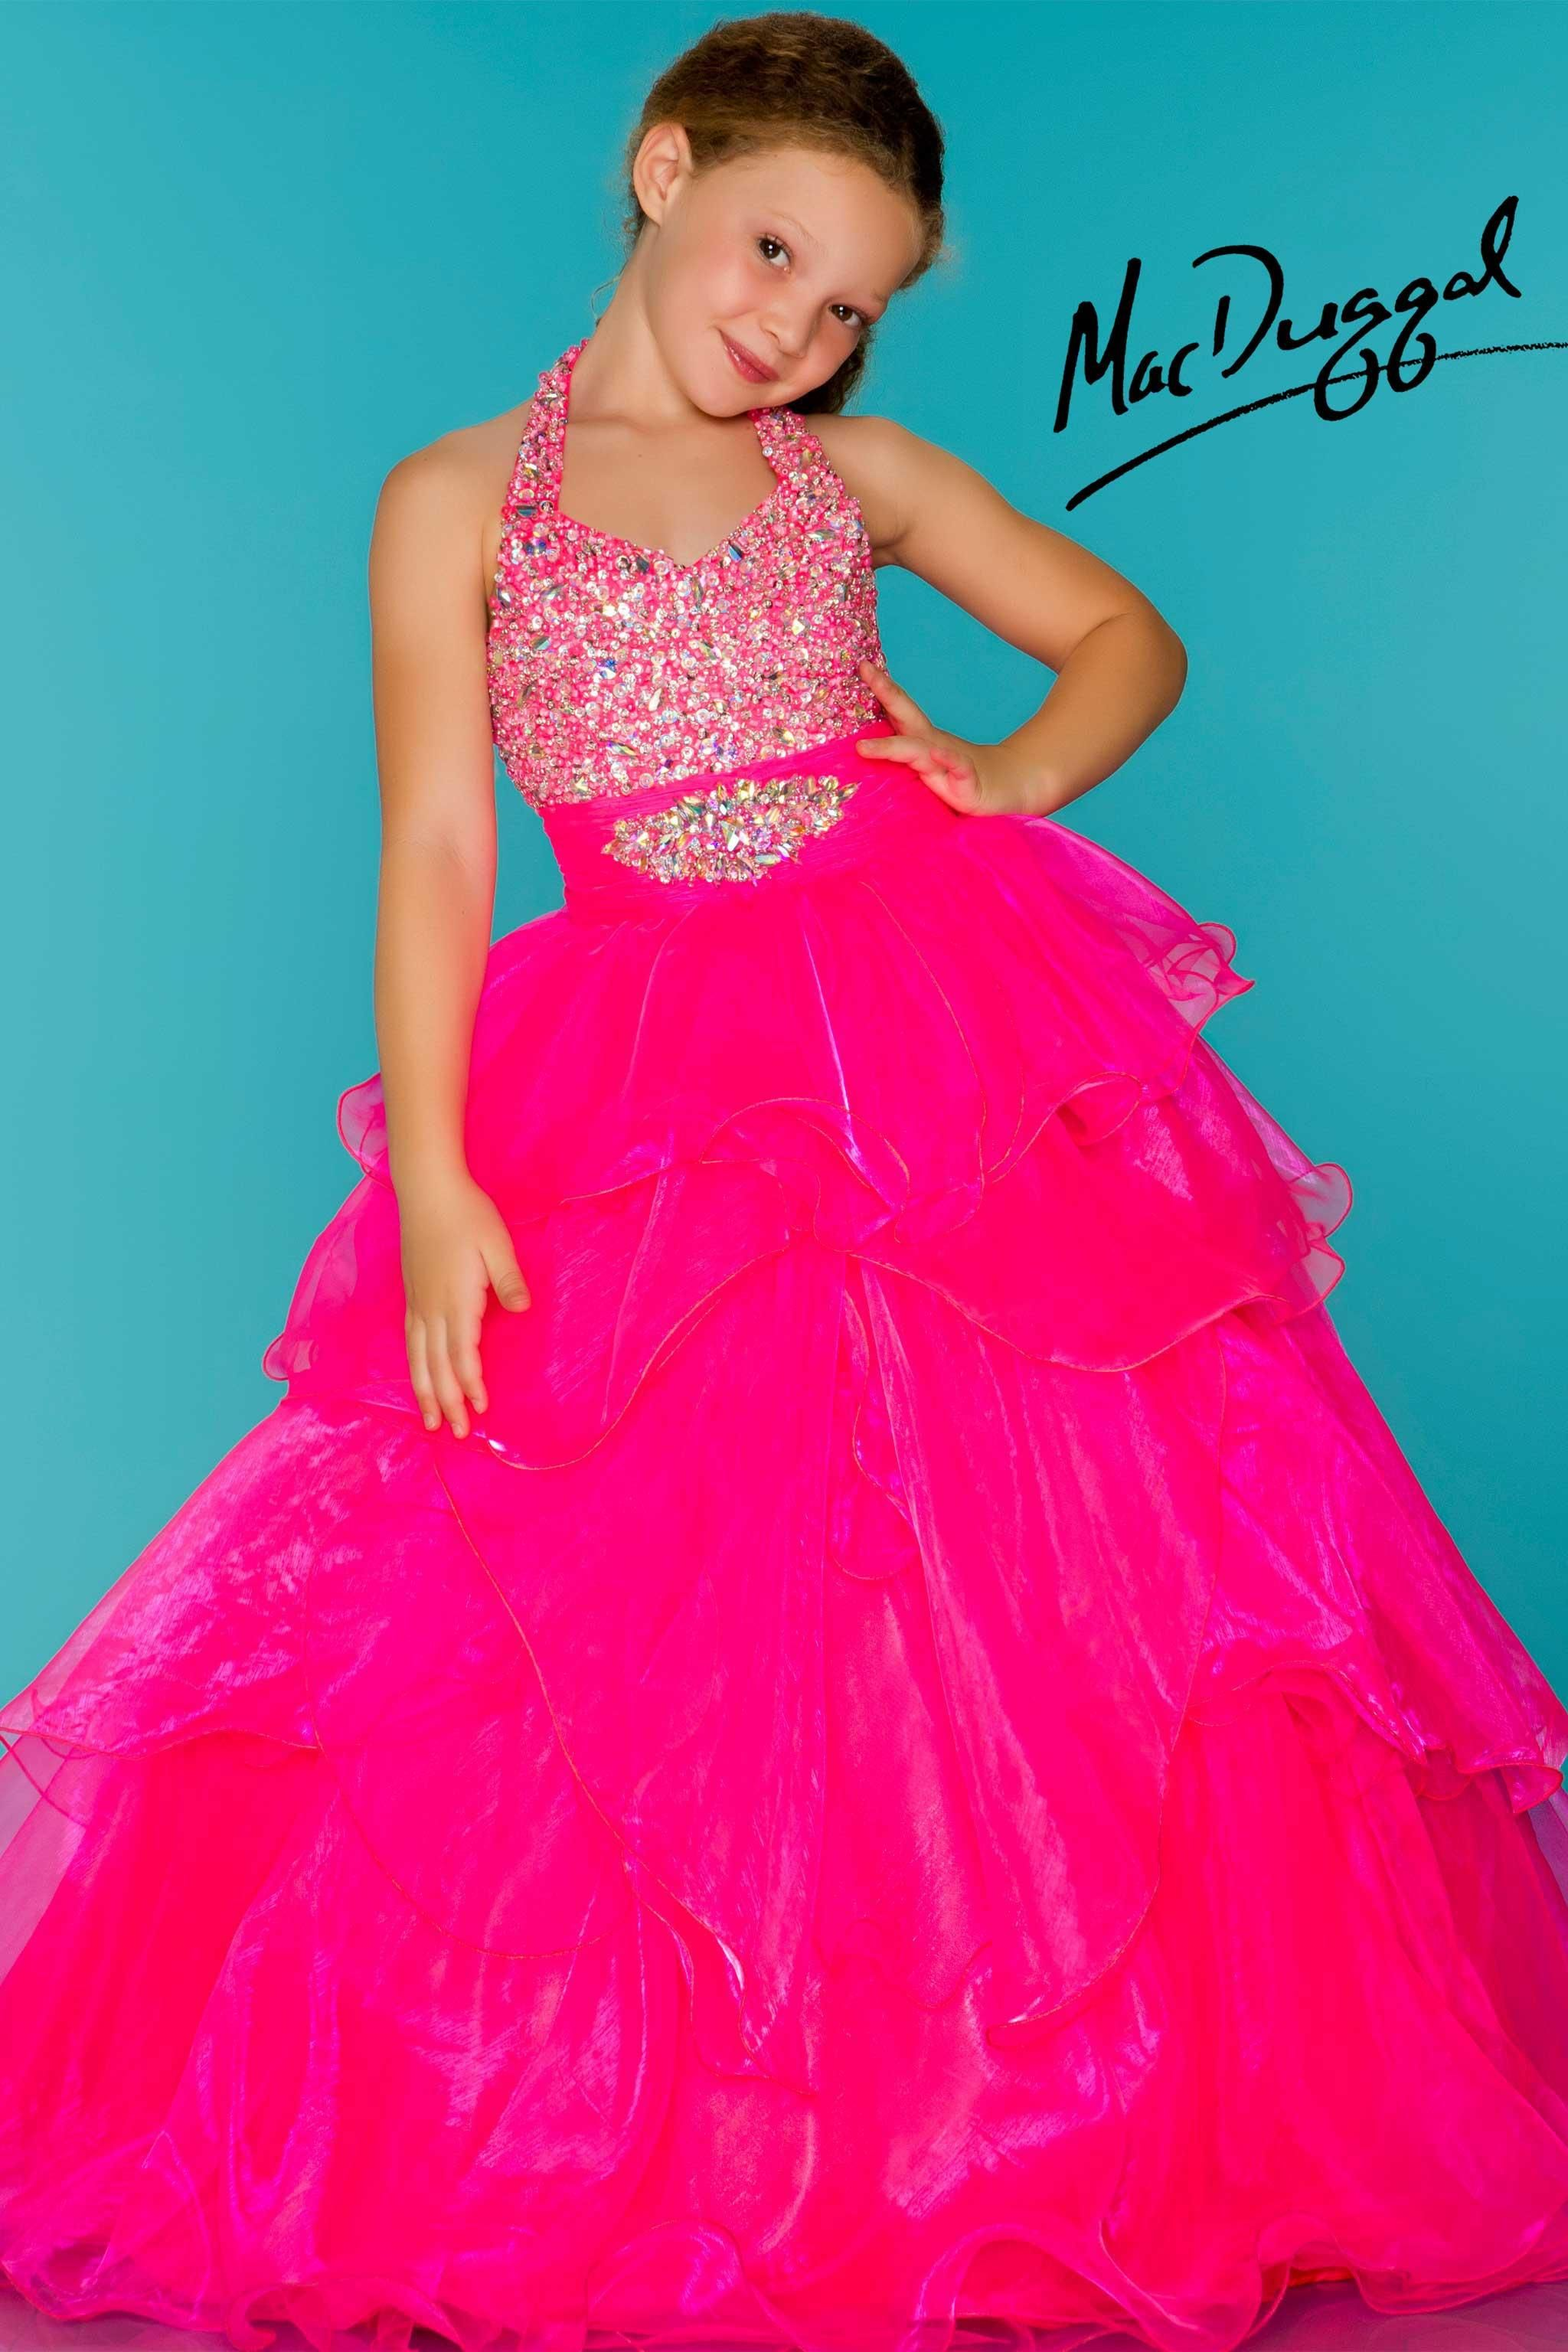 Neon Pink Little Girls Pageant Dress | Glitz and Glam | Pinterest ...